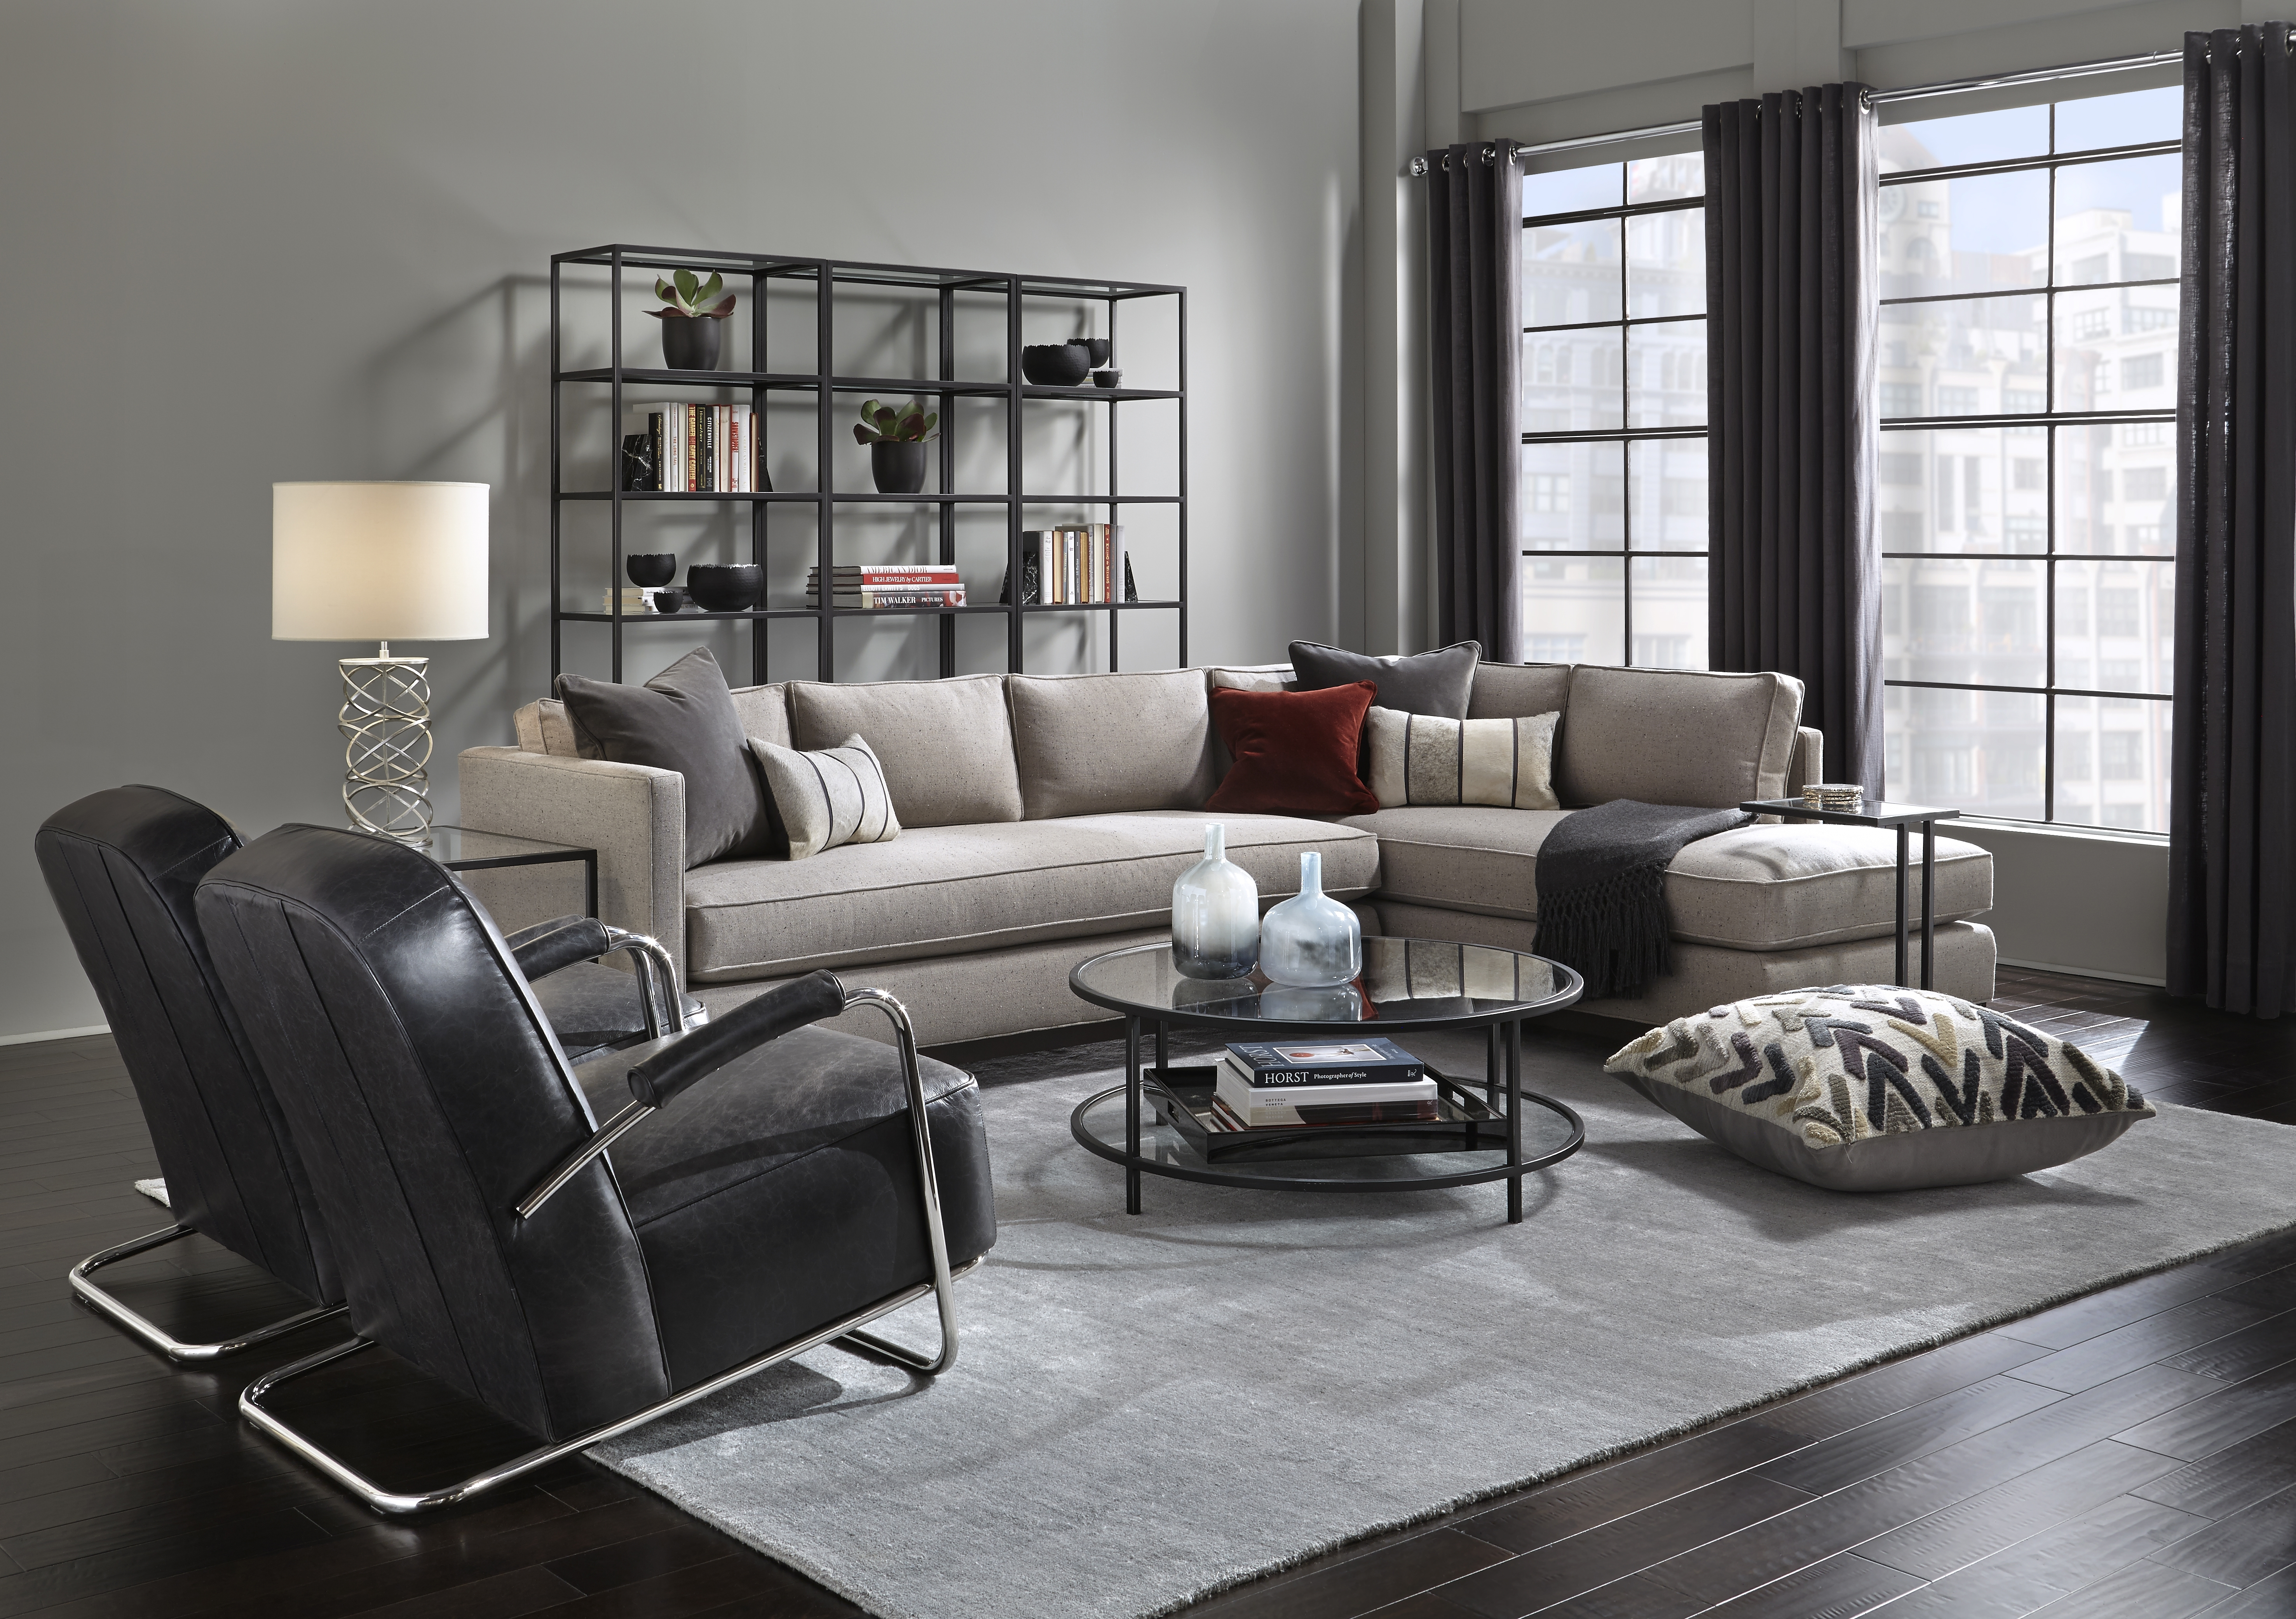 12 Designer Picked Sofas For Every Budget, And People With Pets And Regarding Restoration Hardware Sectional Sofas (Image 1 of 10)